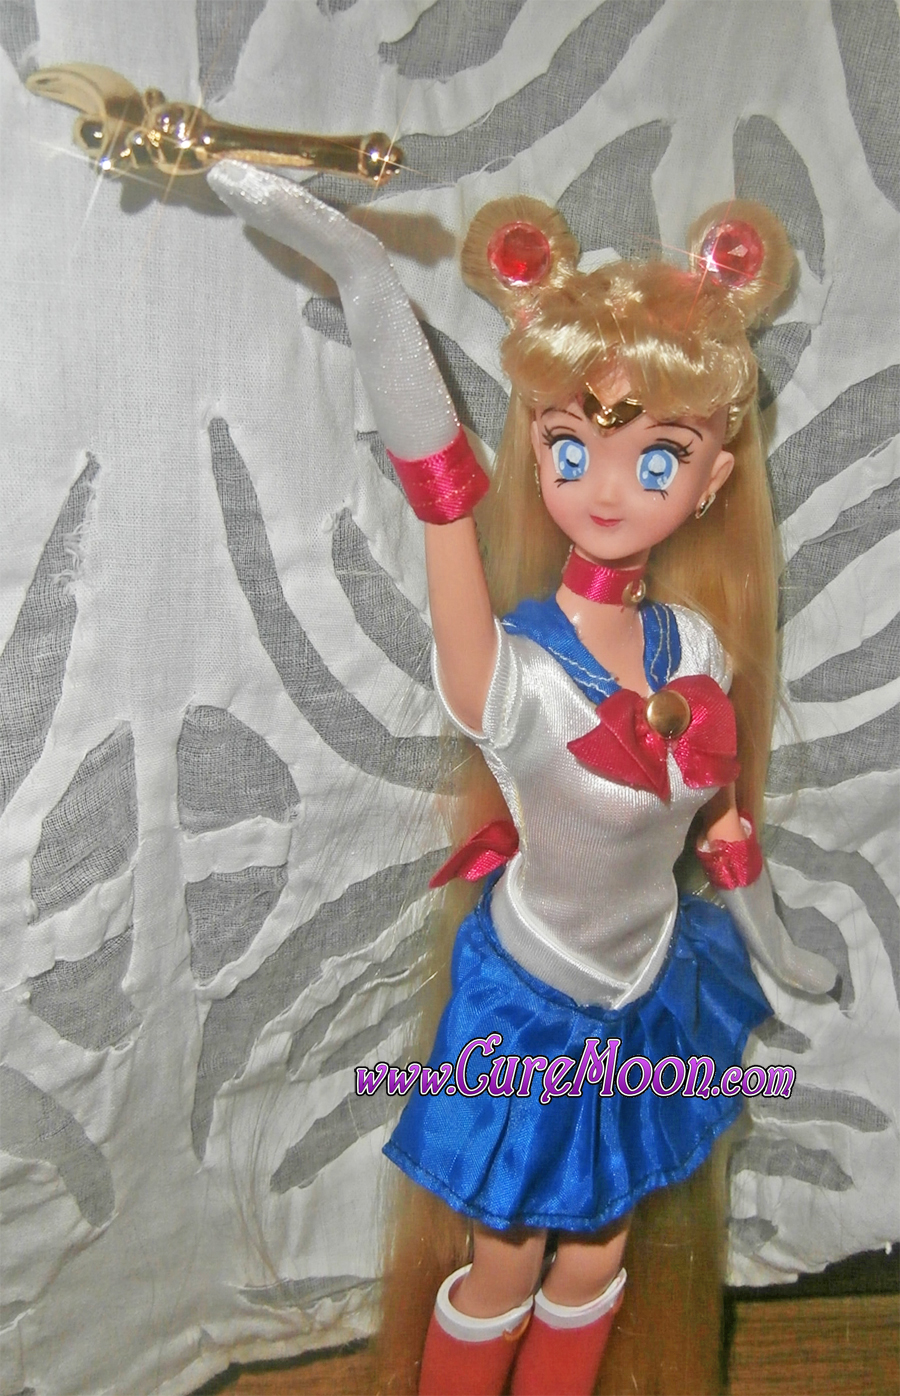 sailor-moon-custom-doll-bambola-excellent-edition-curemoon-2